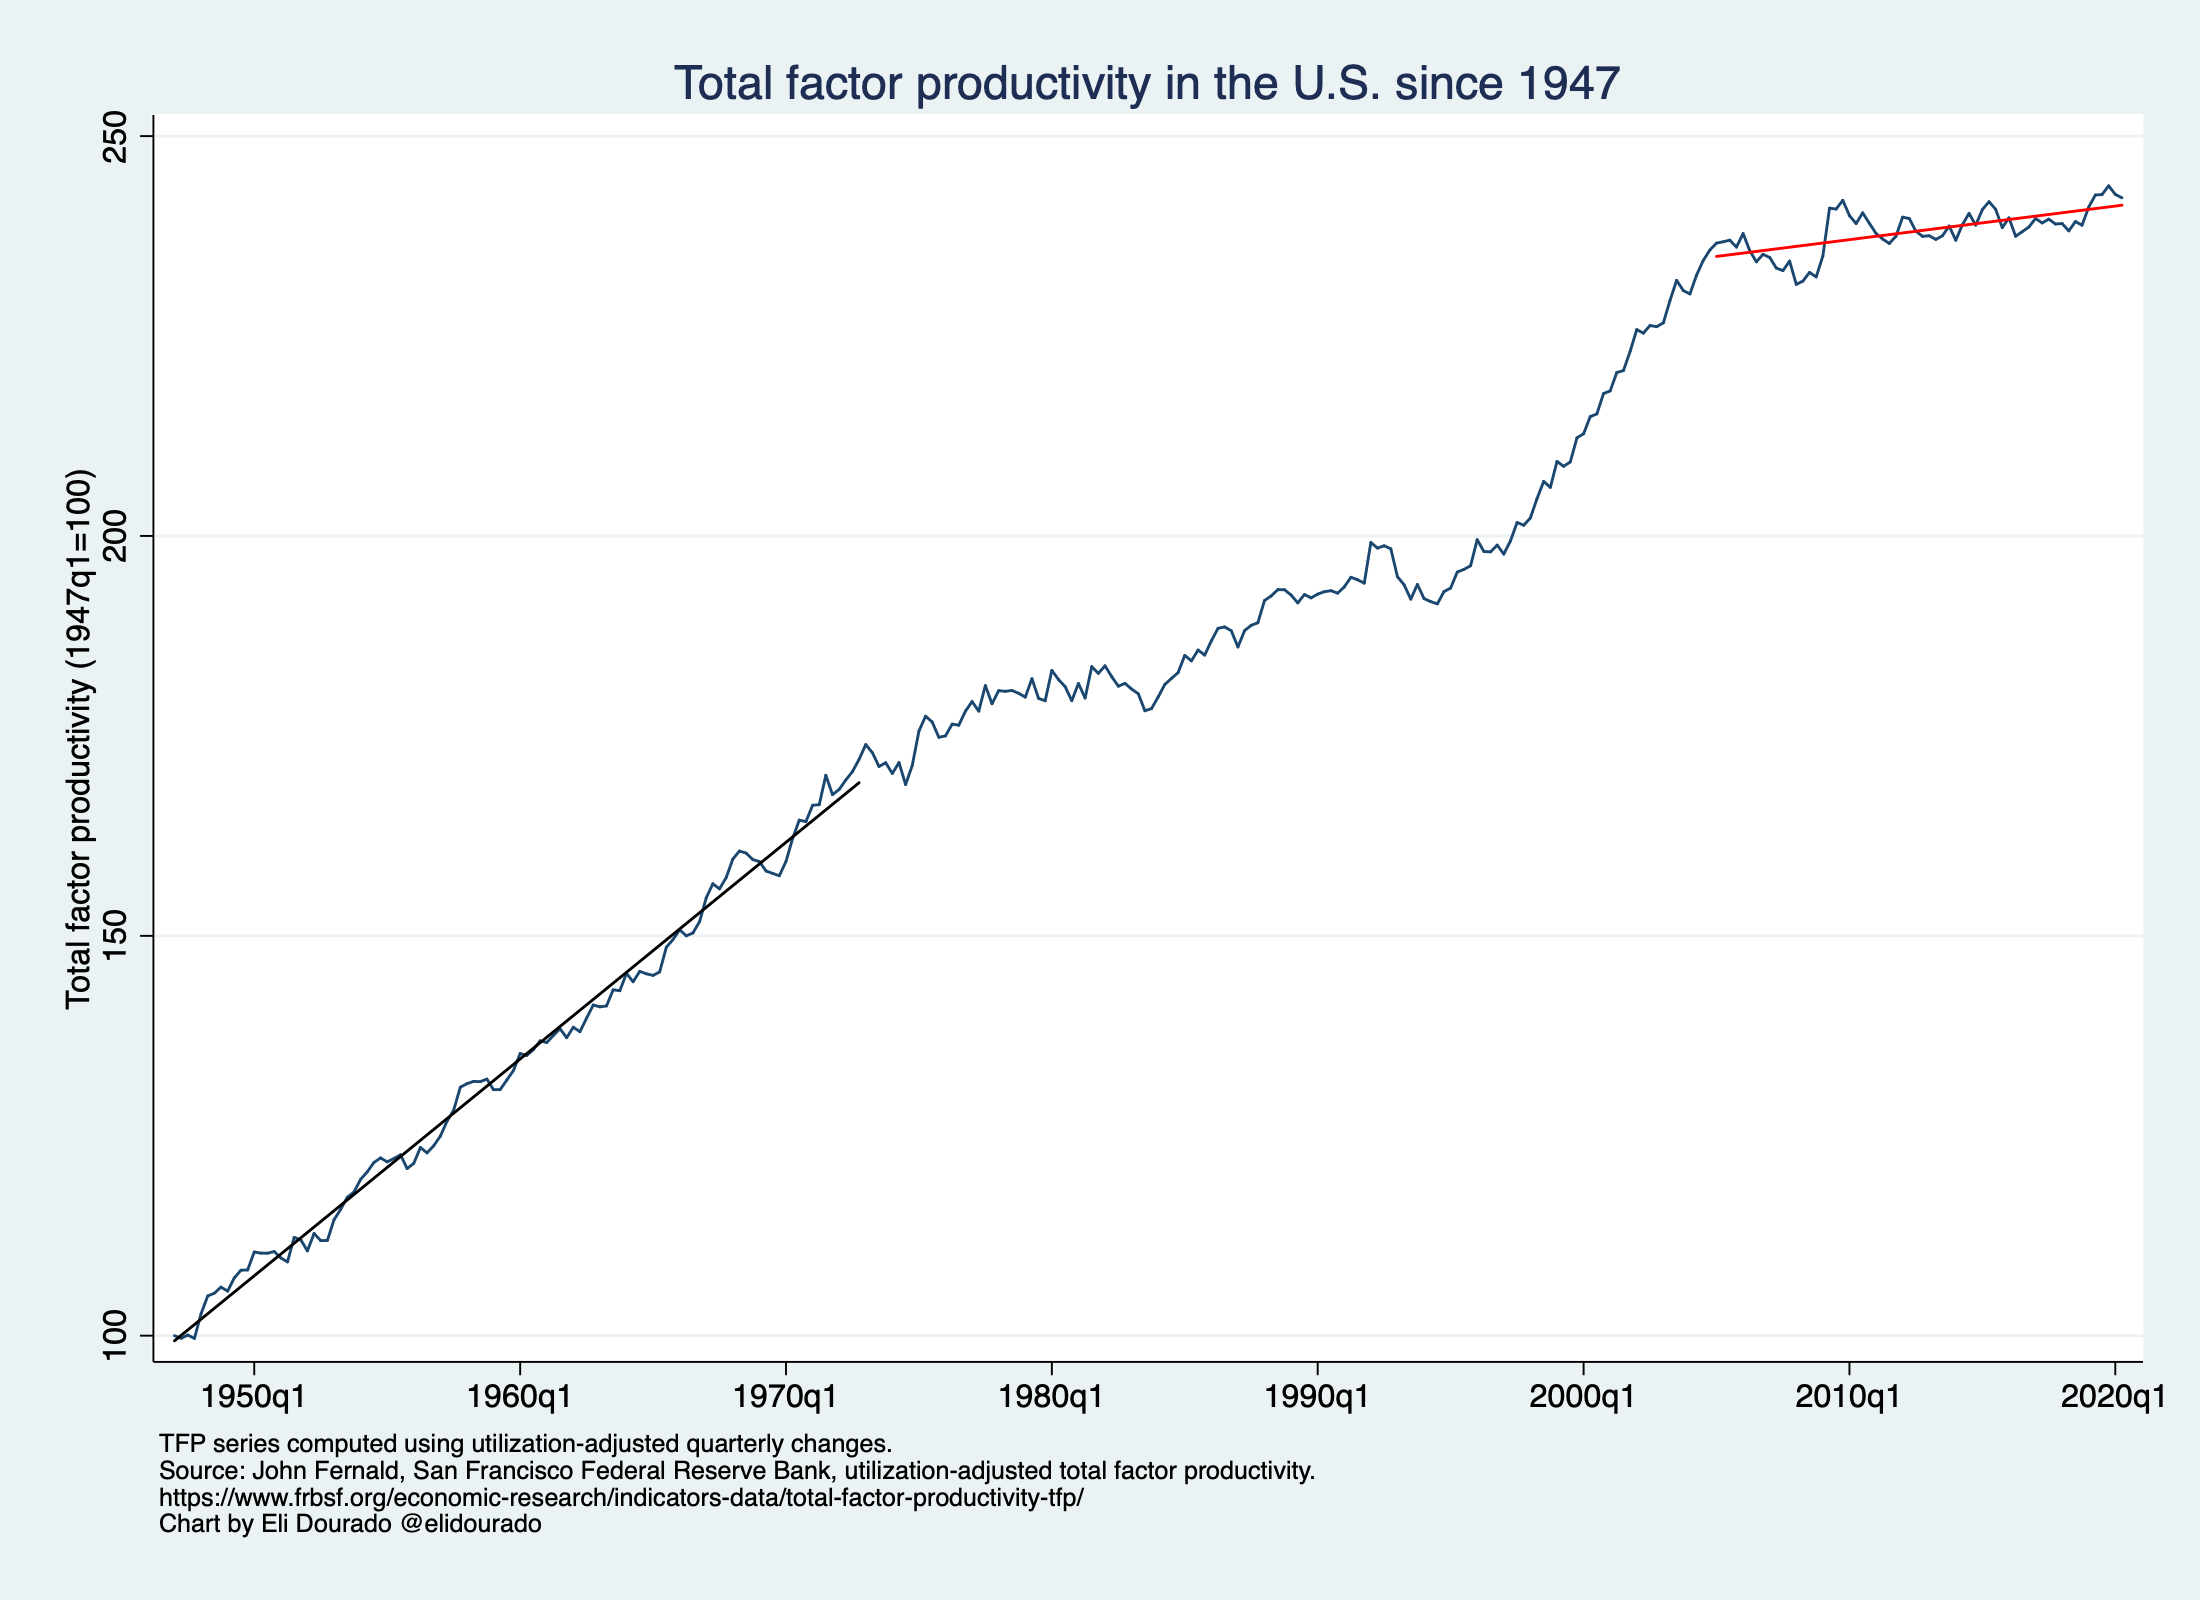 Total factor productivity in the U.S. since 1947